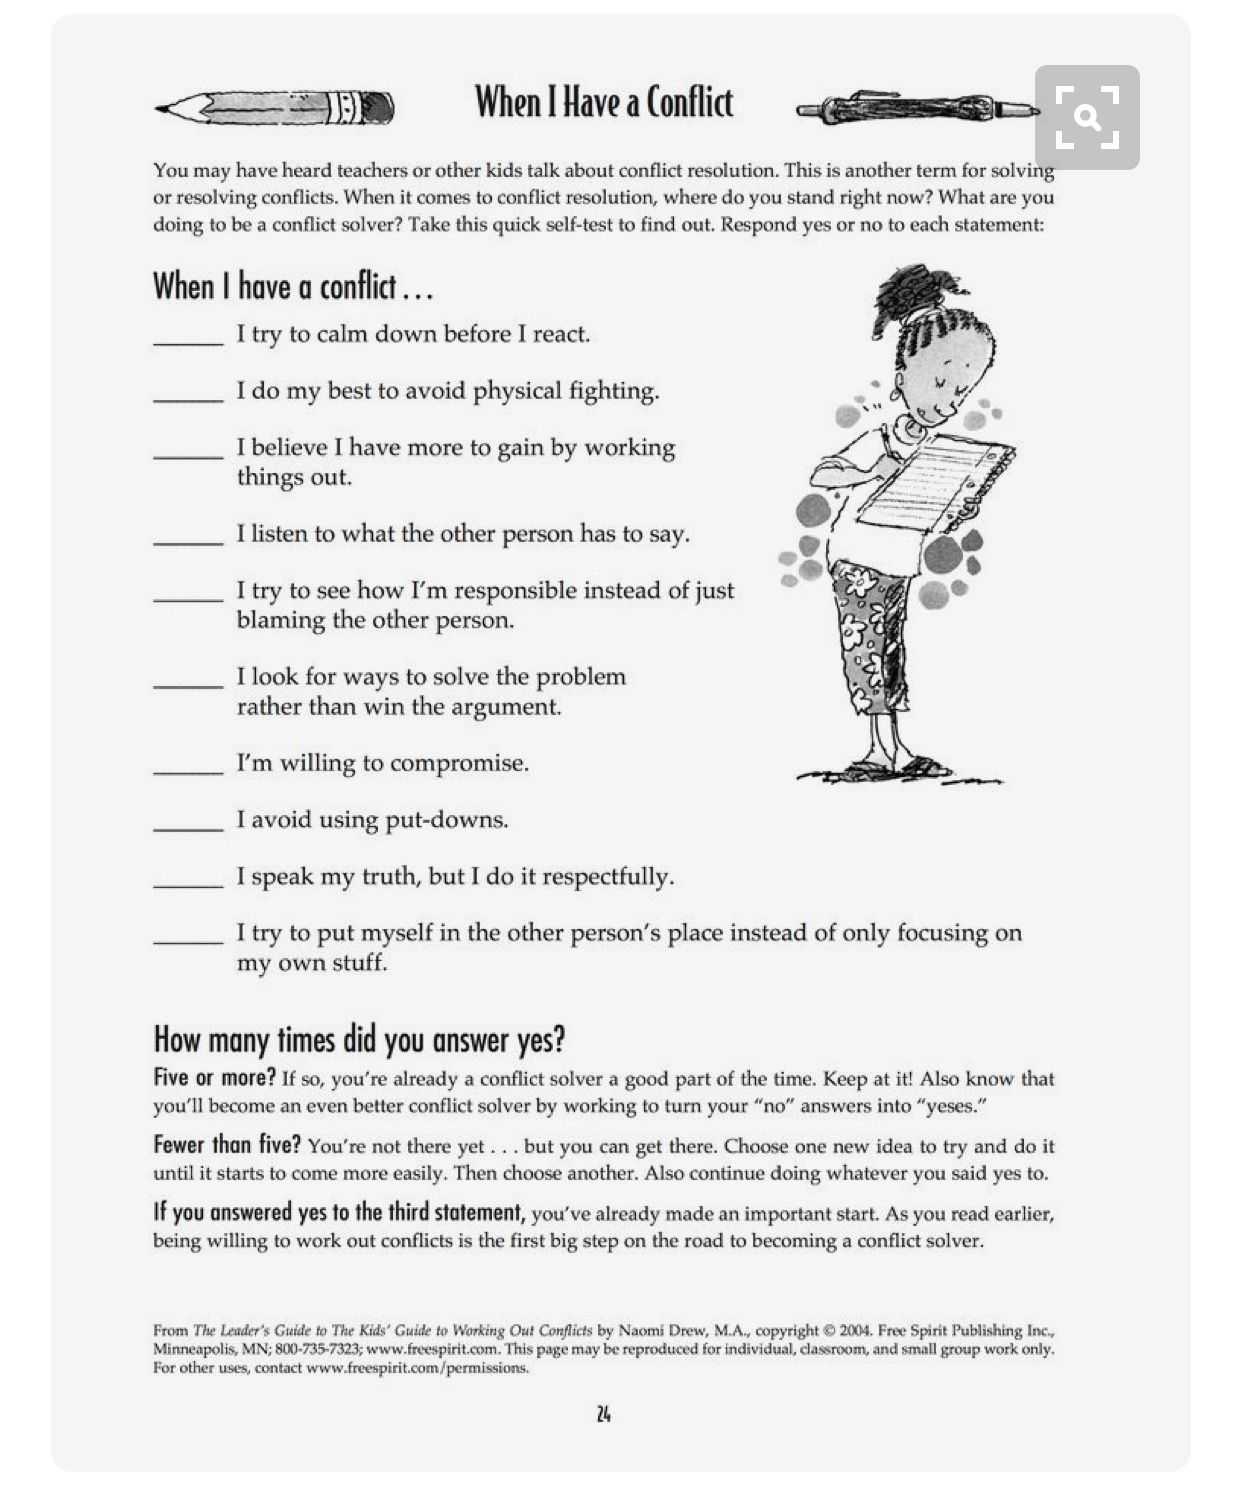 Pin by eboni SALLEY on Social skills | Pinterest